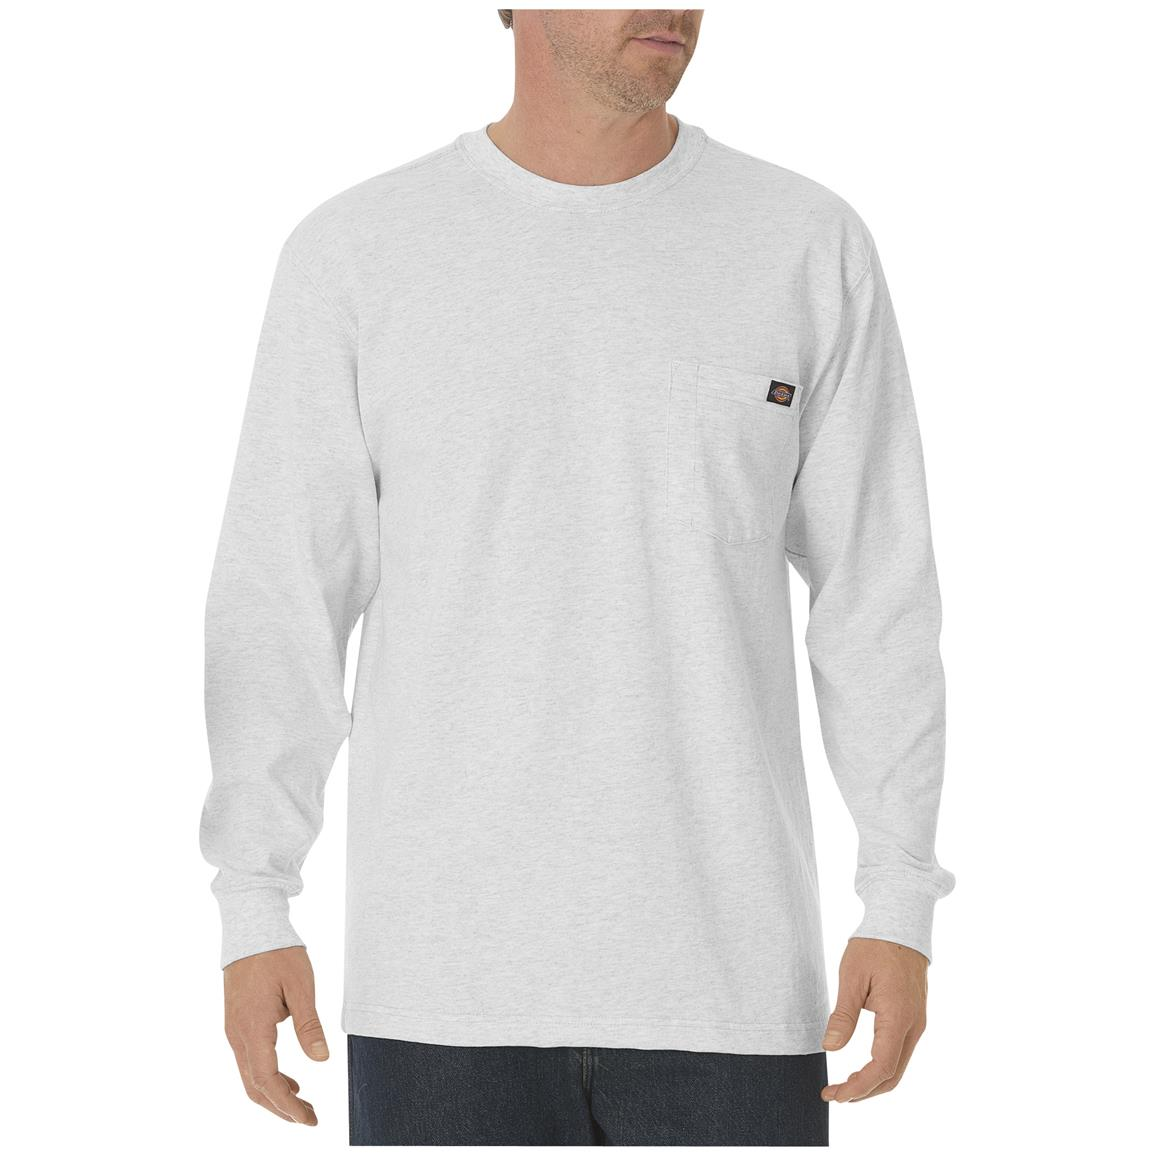 Dickies® Long-sleeved Heavyweight Crew Neck T-shirt, Ash Gray